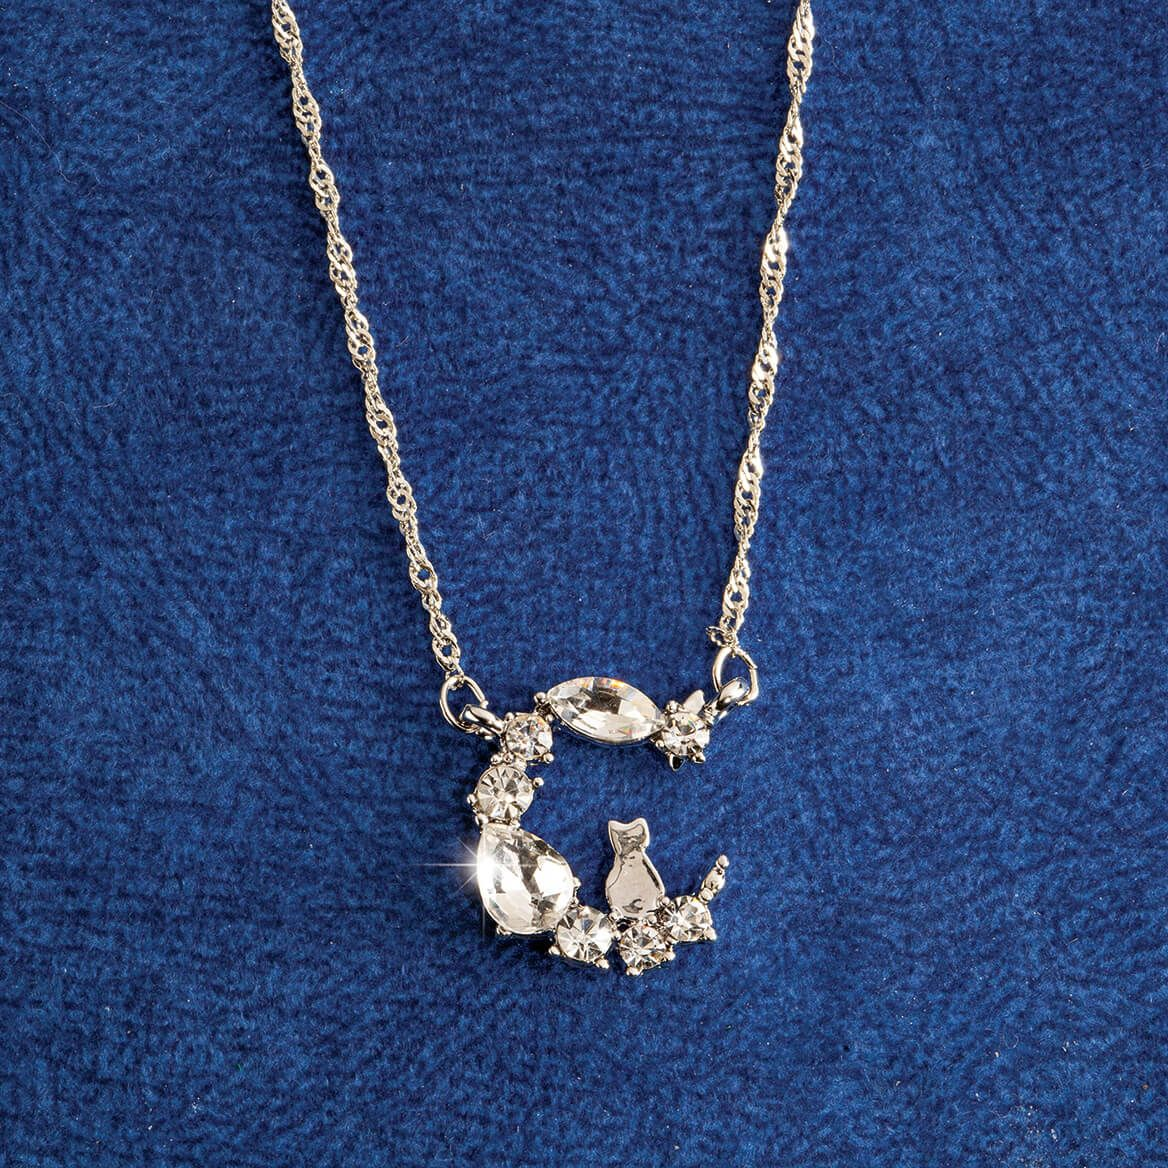 Swinging Cat in the Moon Crystal Necklace-371361